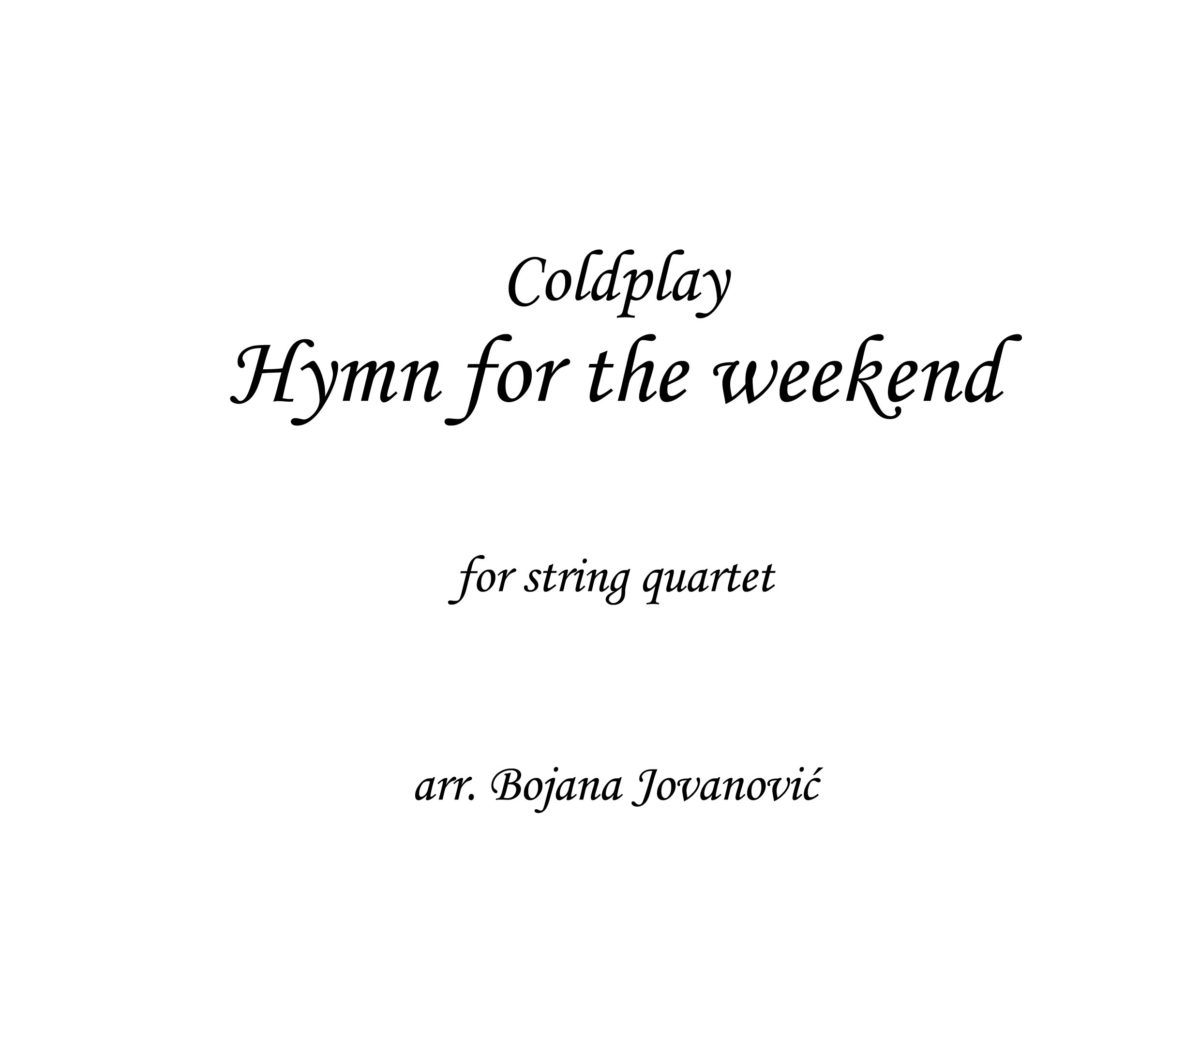 Hymn for the weekend Coldplay Sheet music